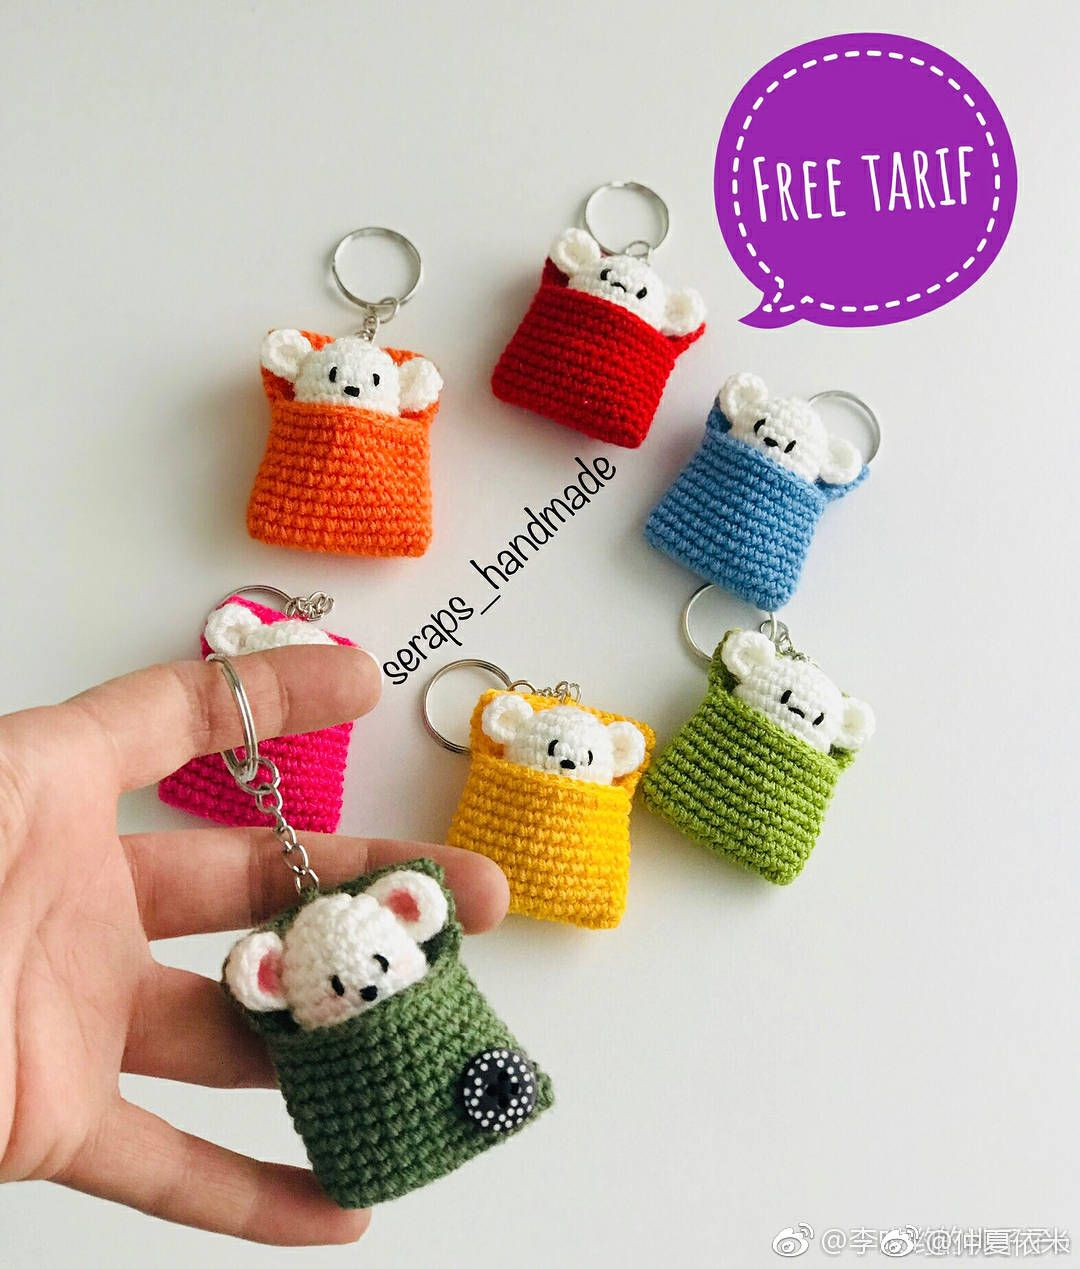 Pin Von Inge Auf Crochet Mini Almost All Free Patterns Things